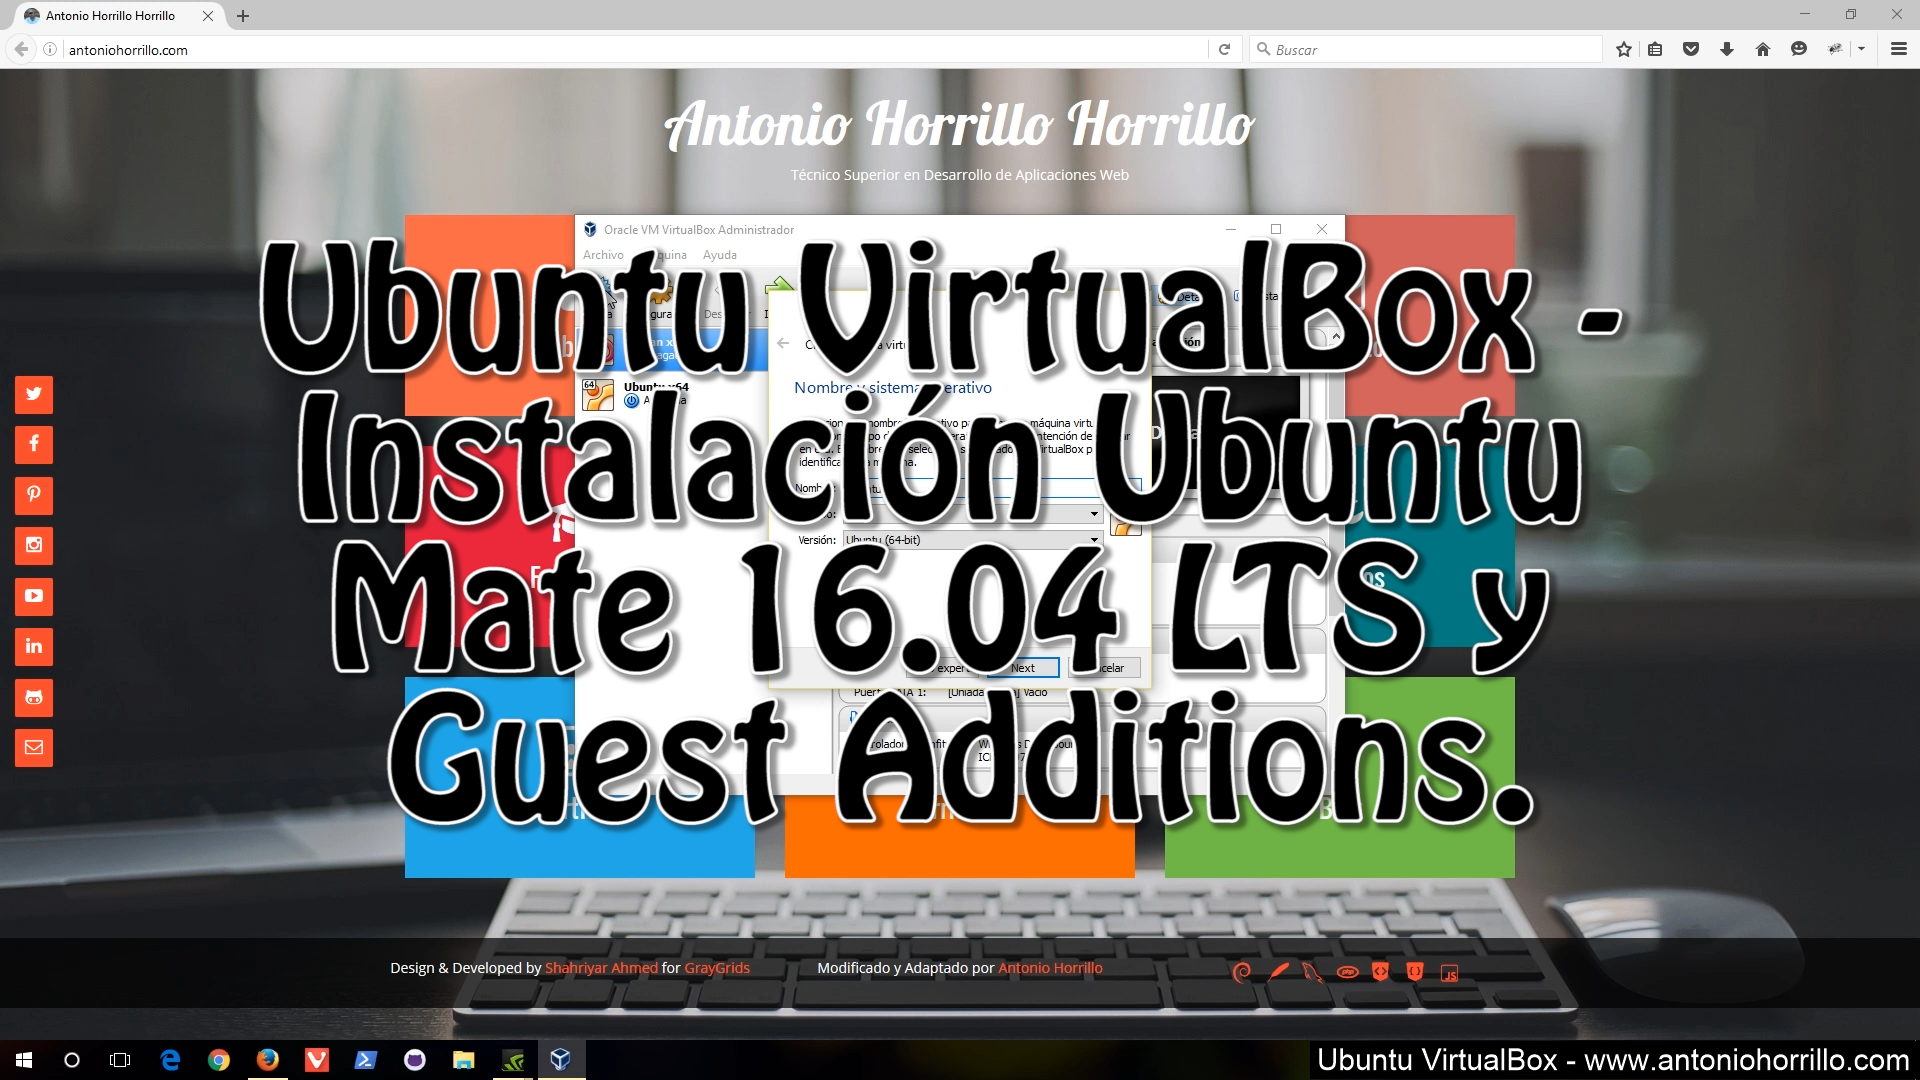 Ubuntu VirtualBox - Instalación Ubuntu Mate 16.04 LTS y Guest Additions.